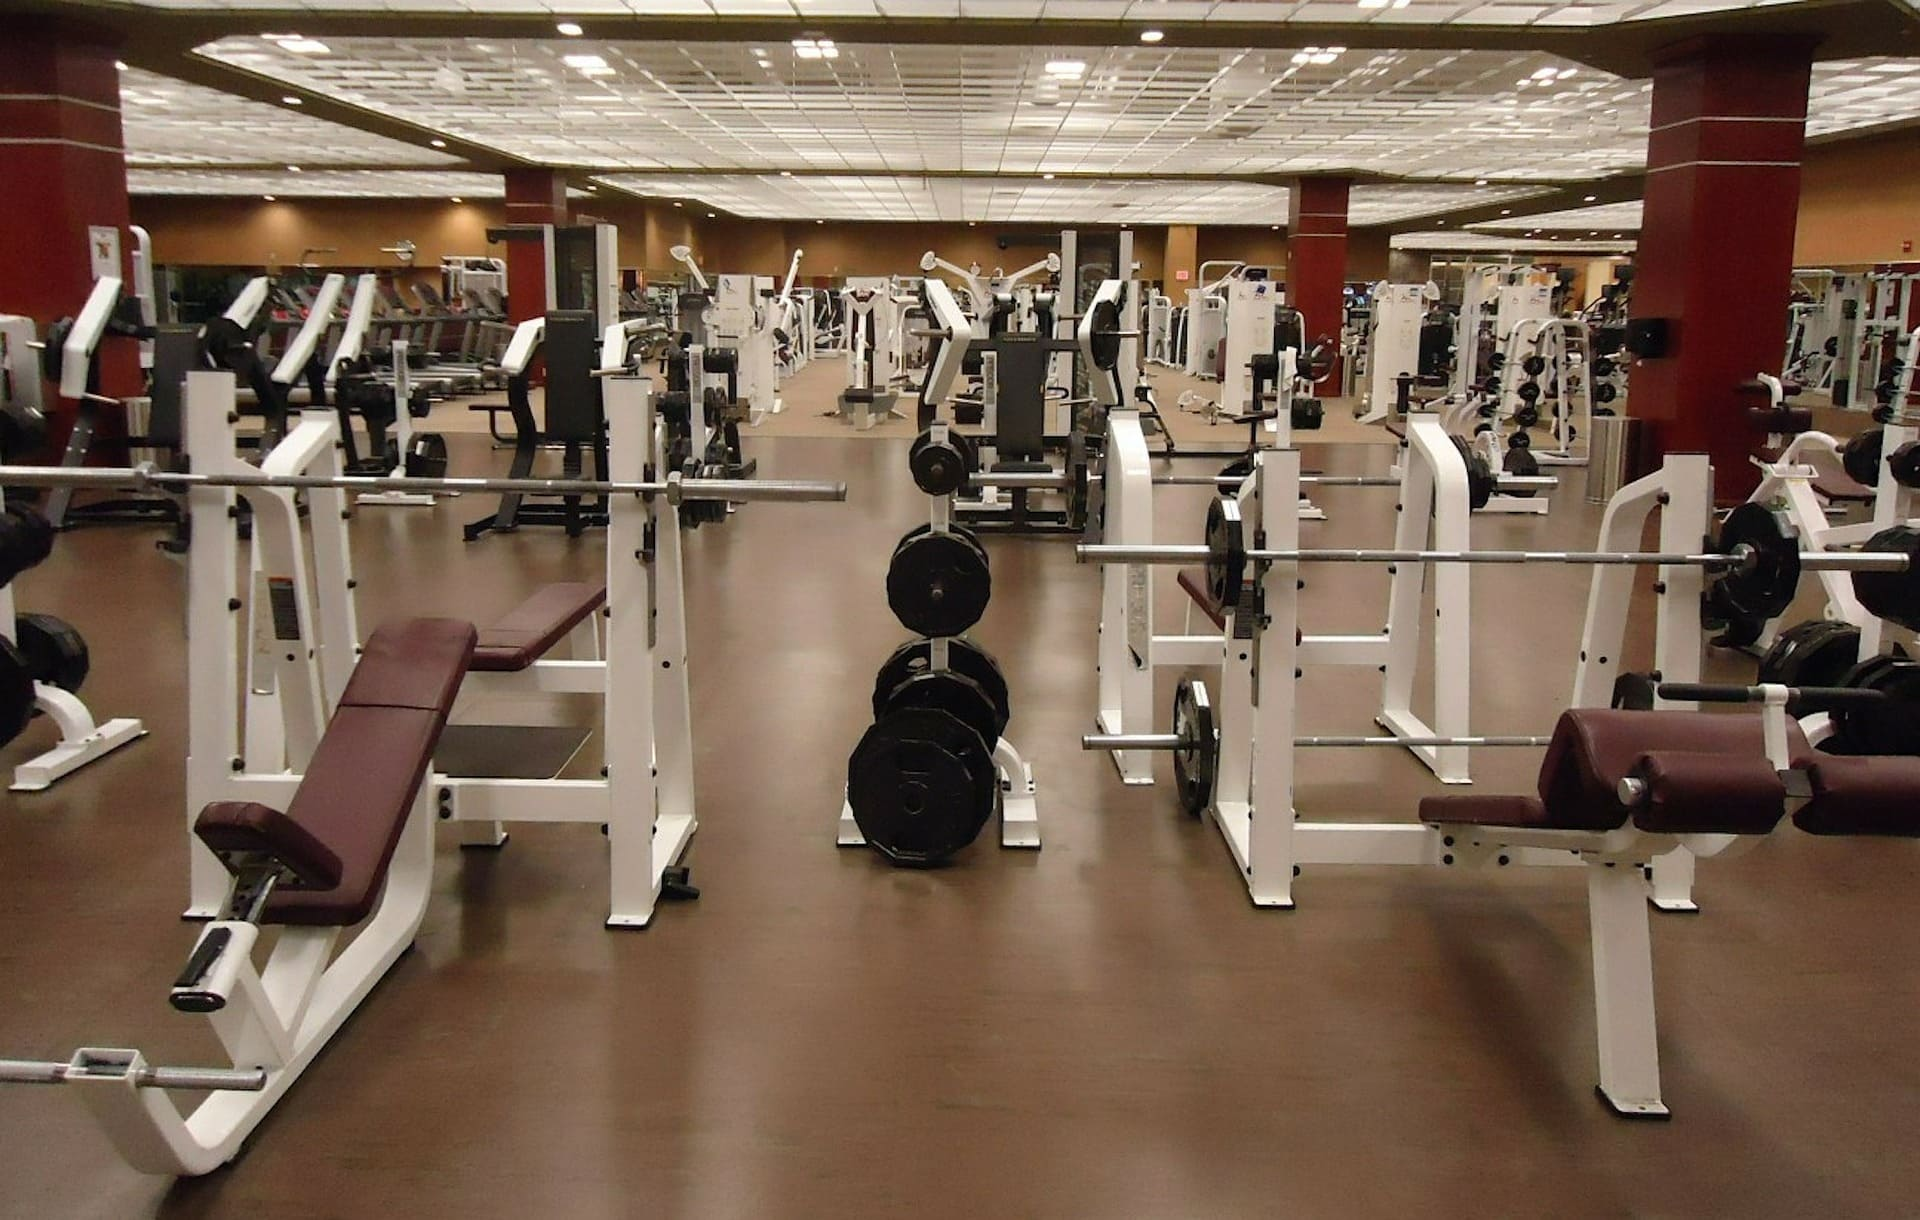 Free weights vs exercise machines: Which one should you be using?